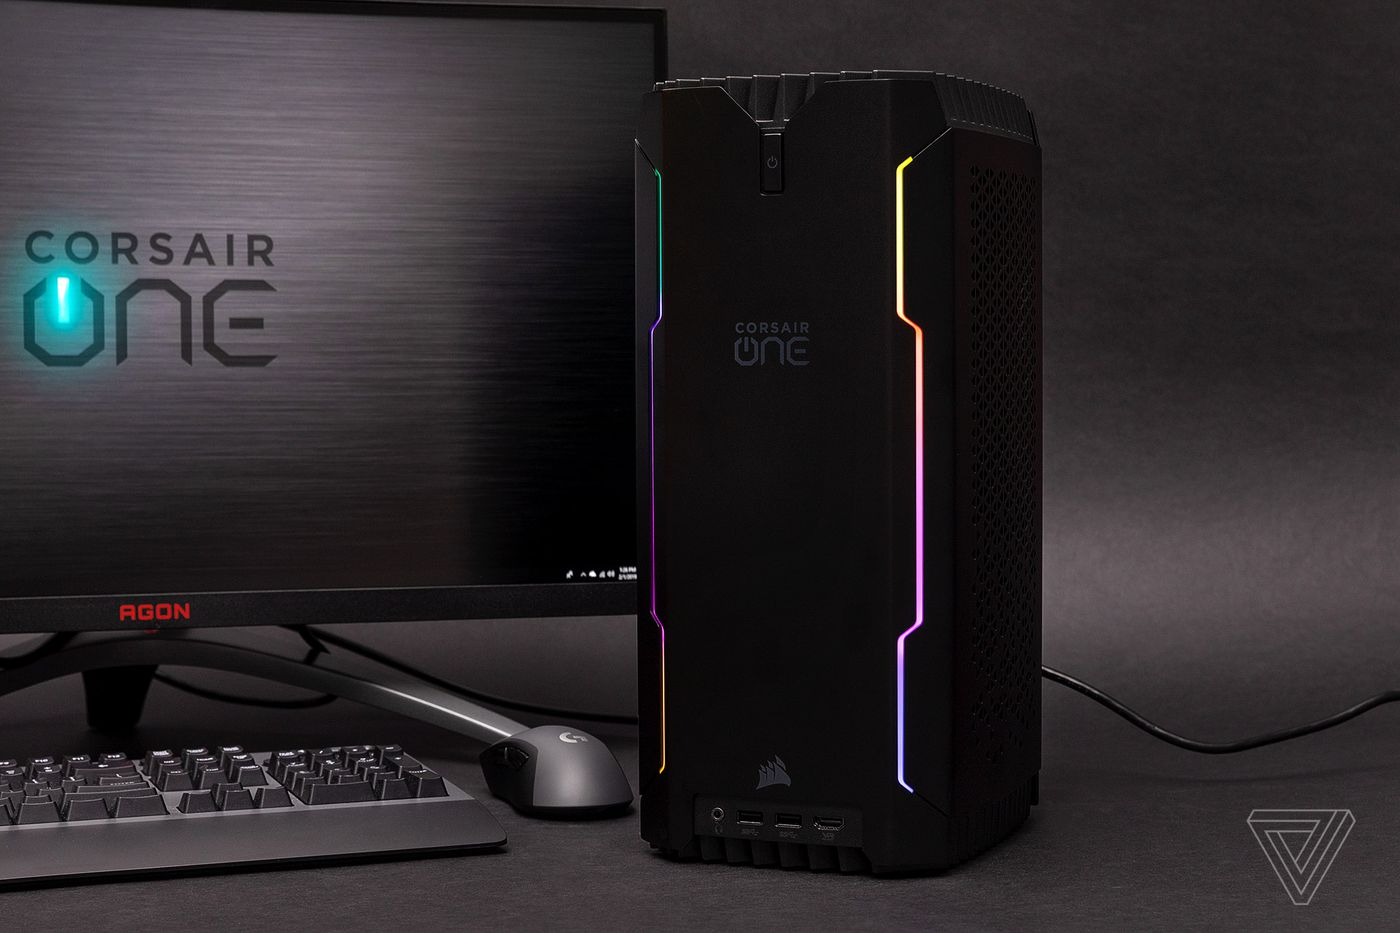 Corsair One i160 gaming PC review: small, powerful, and pricey - The